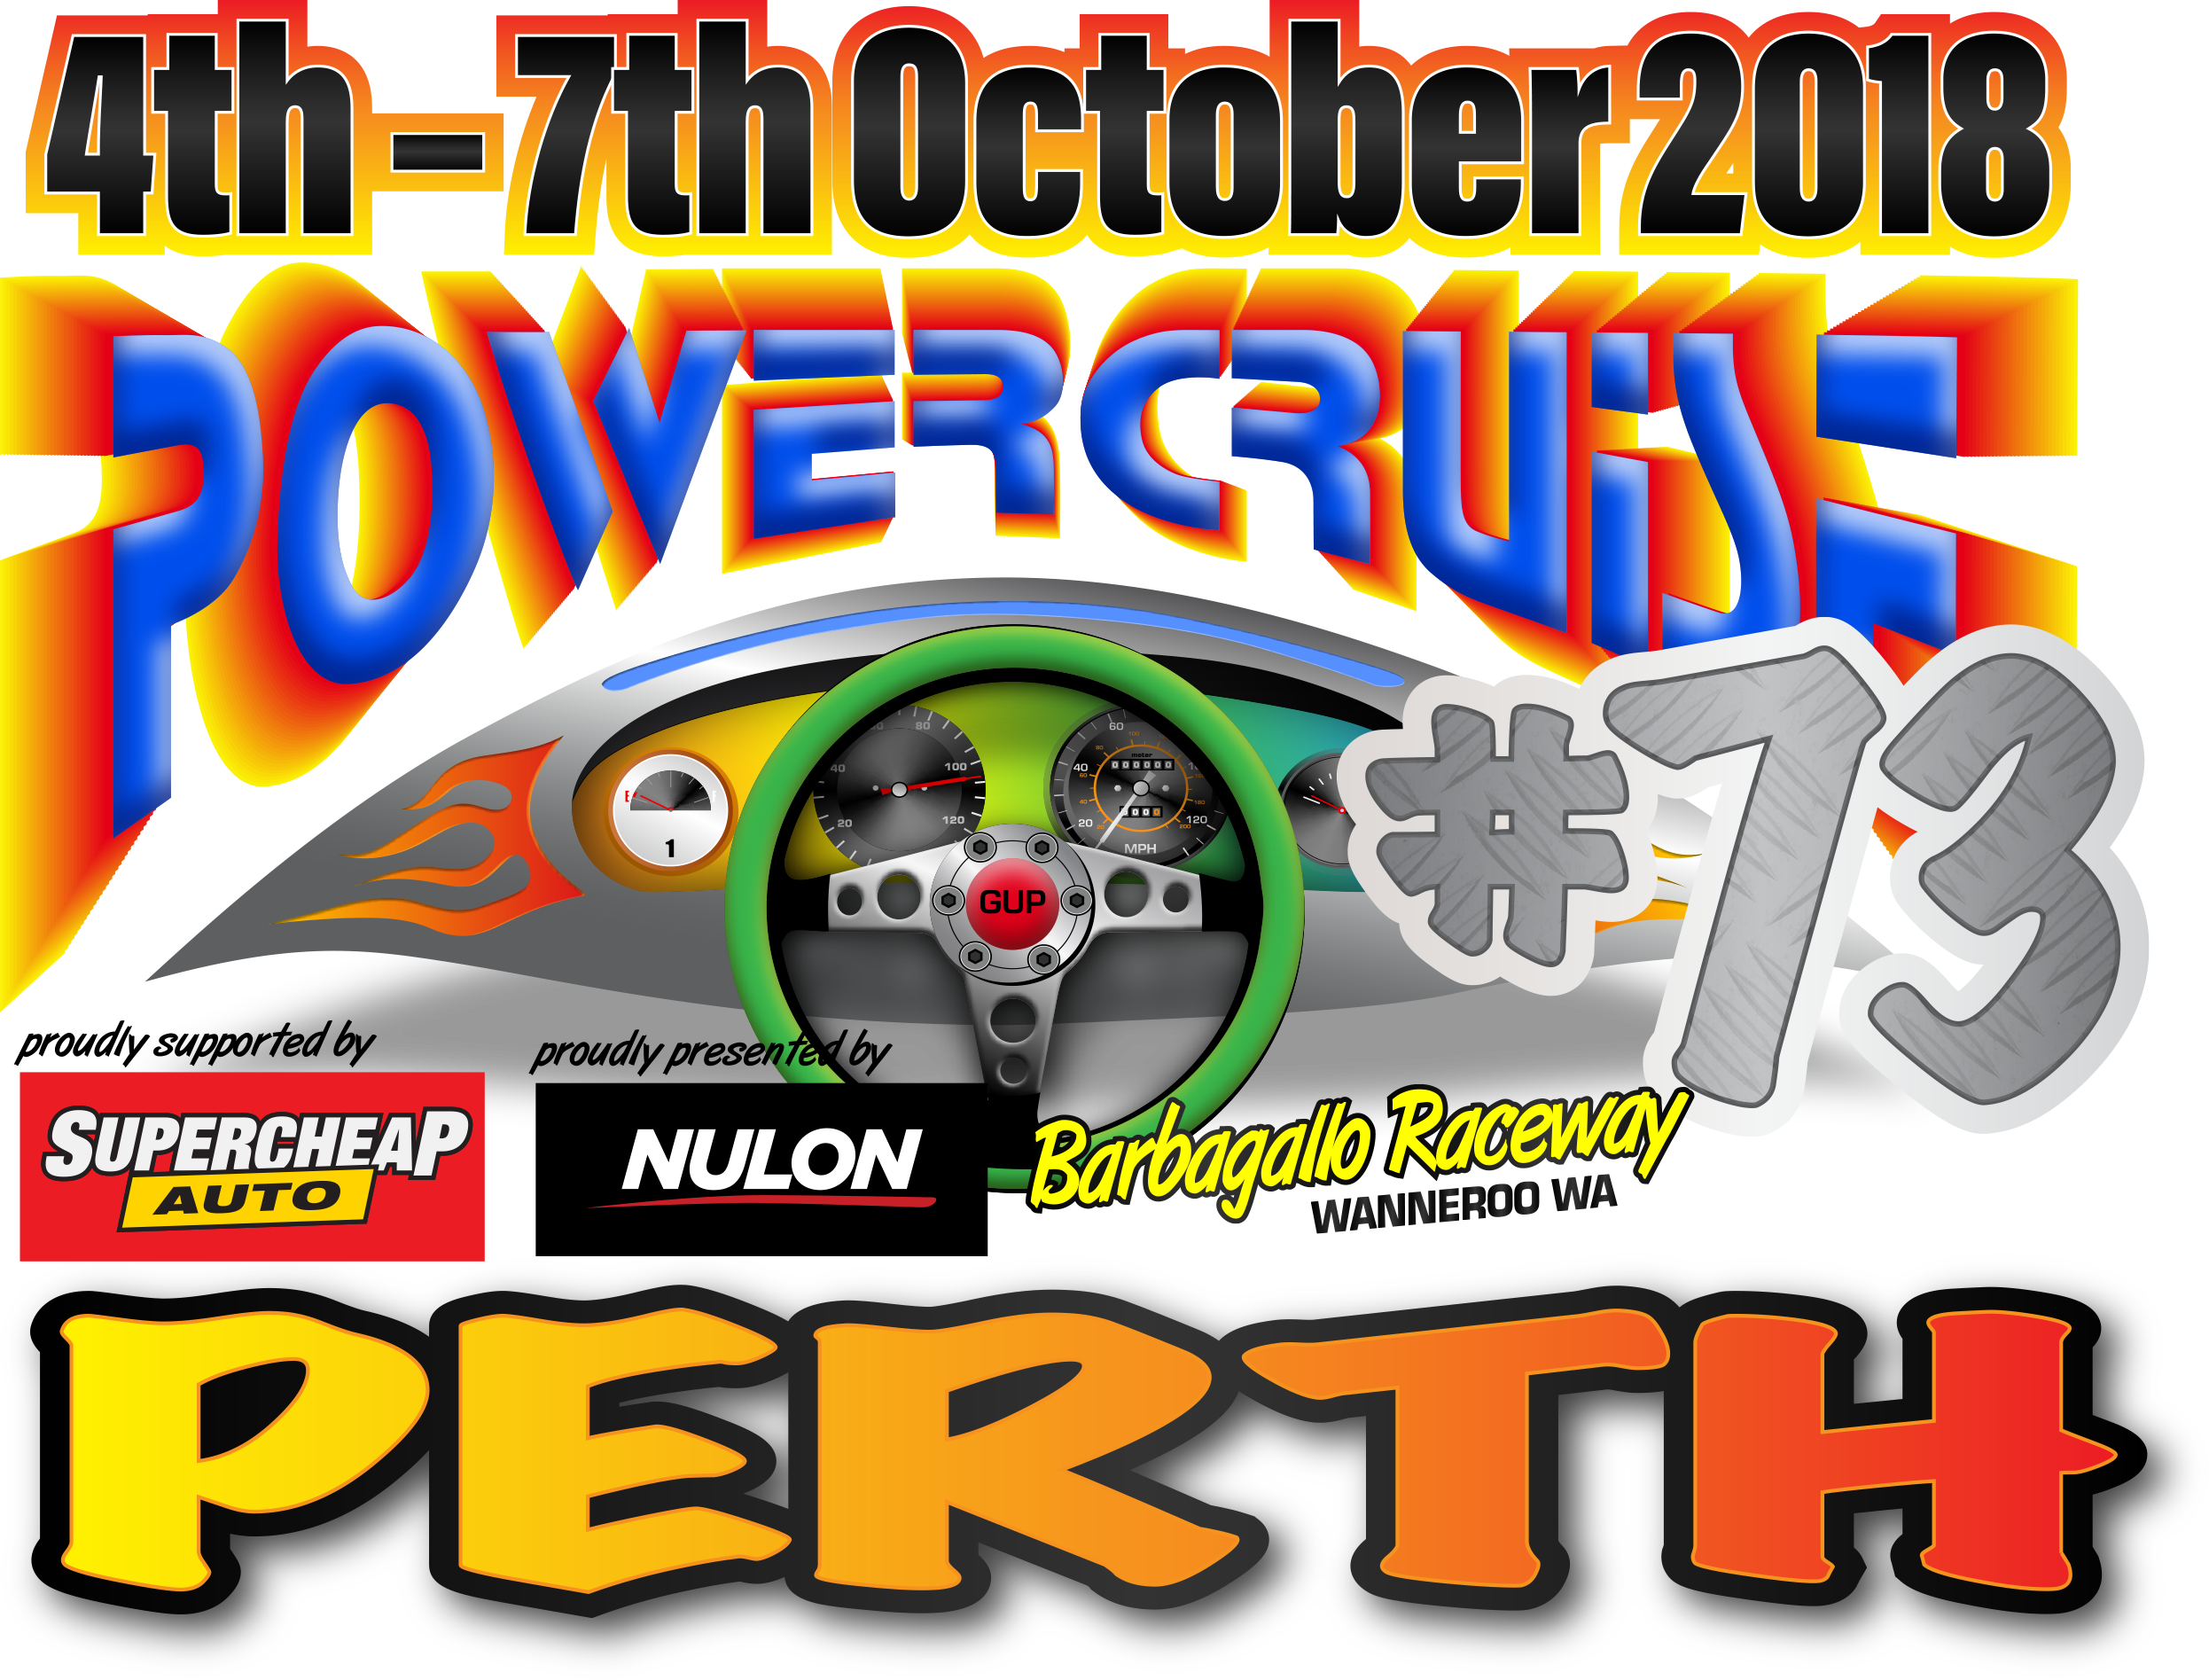 powercruise perth logo date